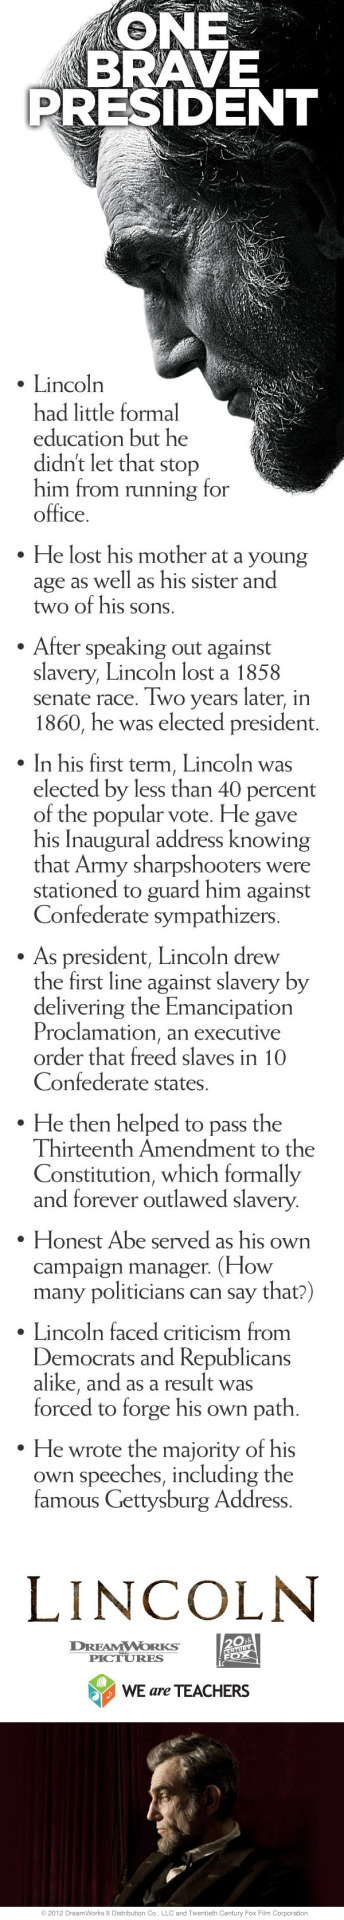 Abraham Lincoln Was Born In Hodgenville Kentucky On February 12